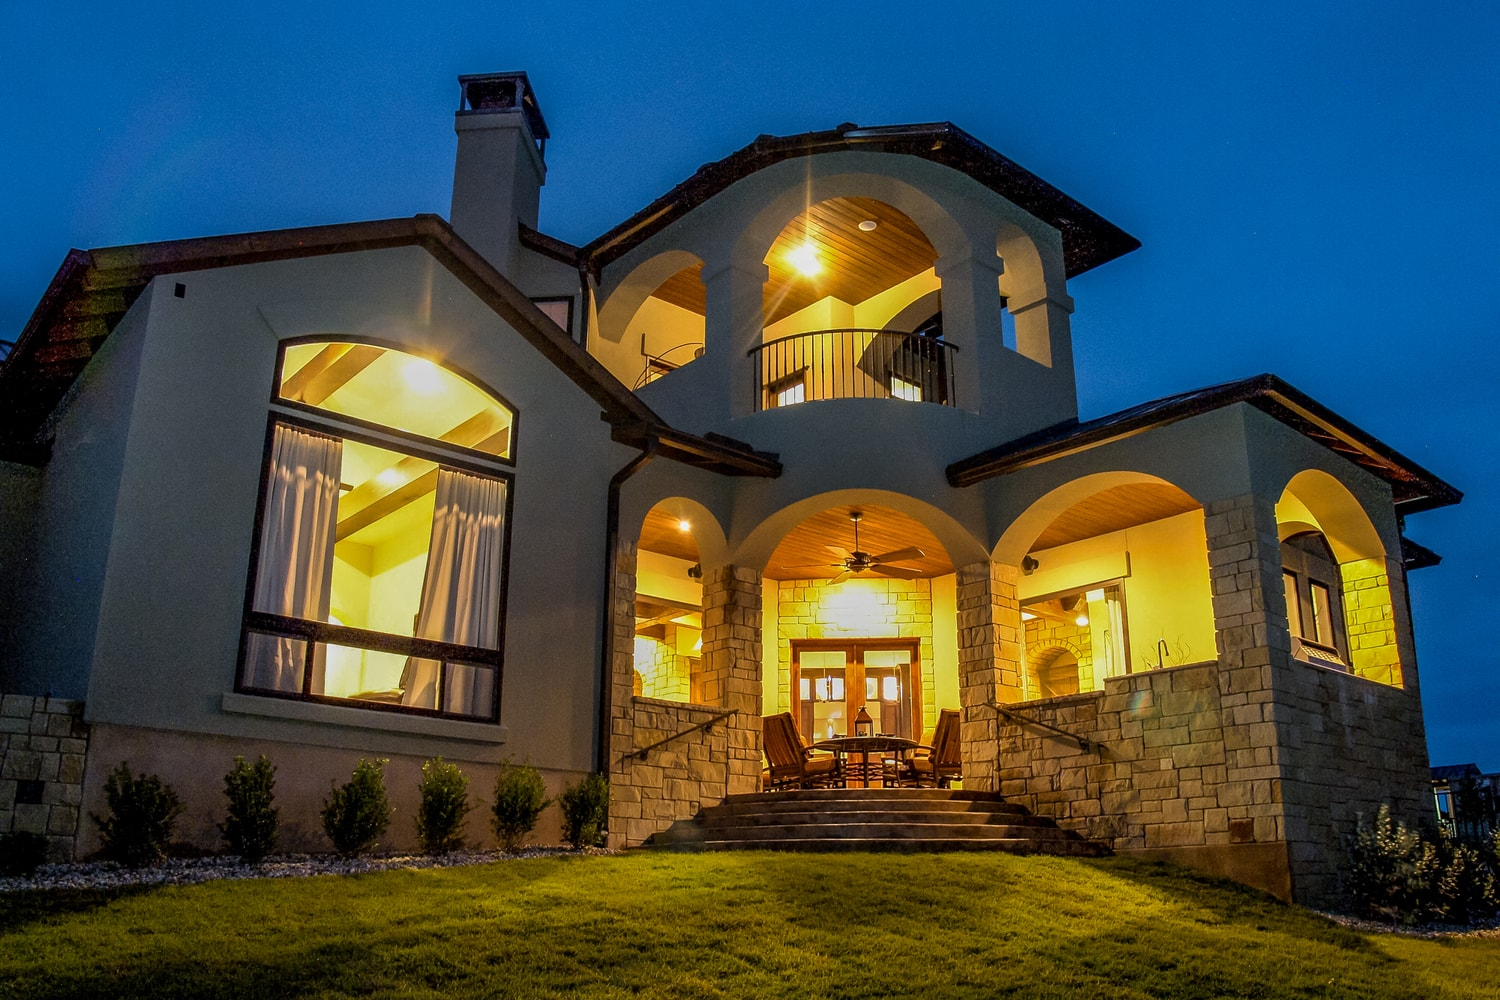 Texas Style Luxury Home With 4 Bedrooms 3716 Sq Ft